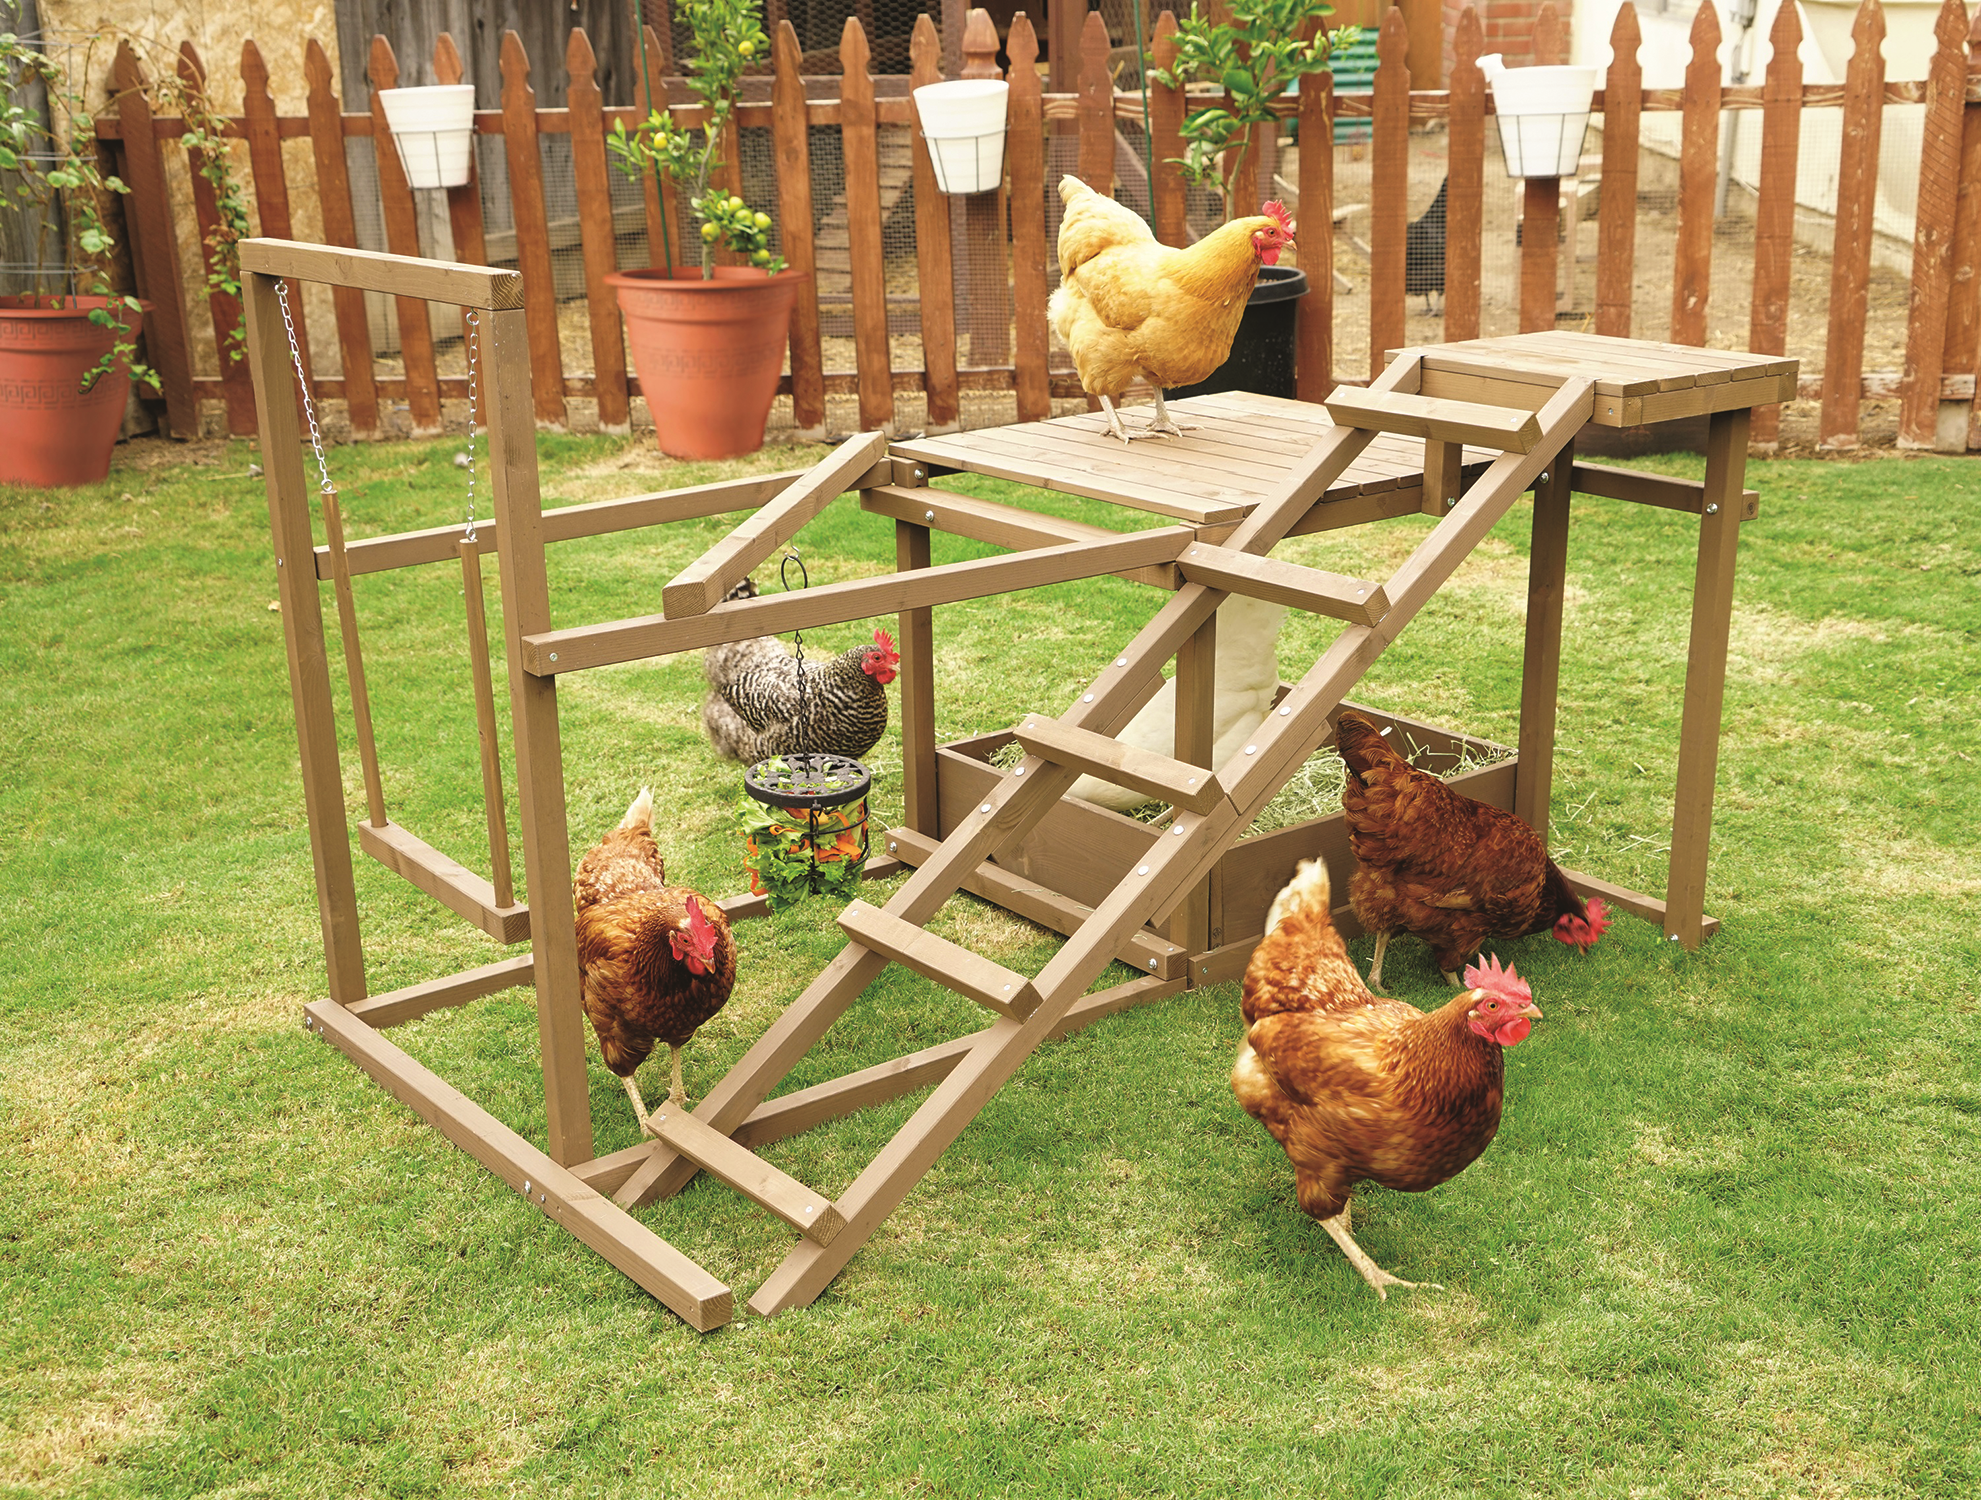 Activity Center for Chickens!! The Innovation Pet Chicken